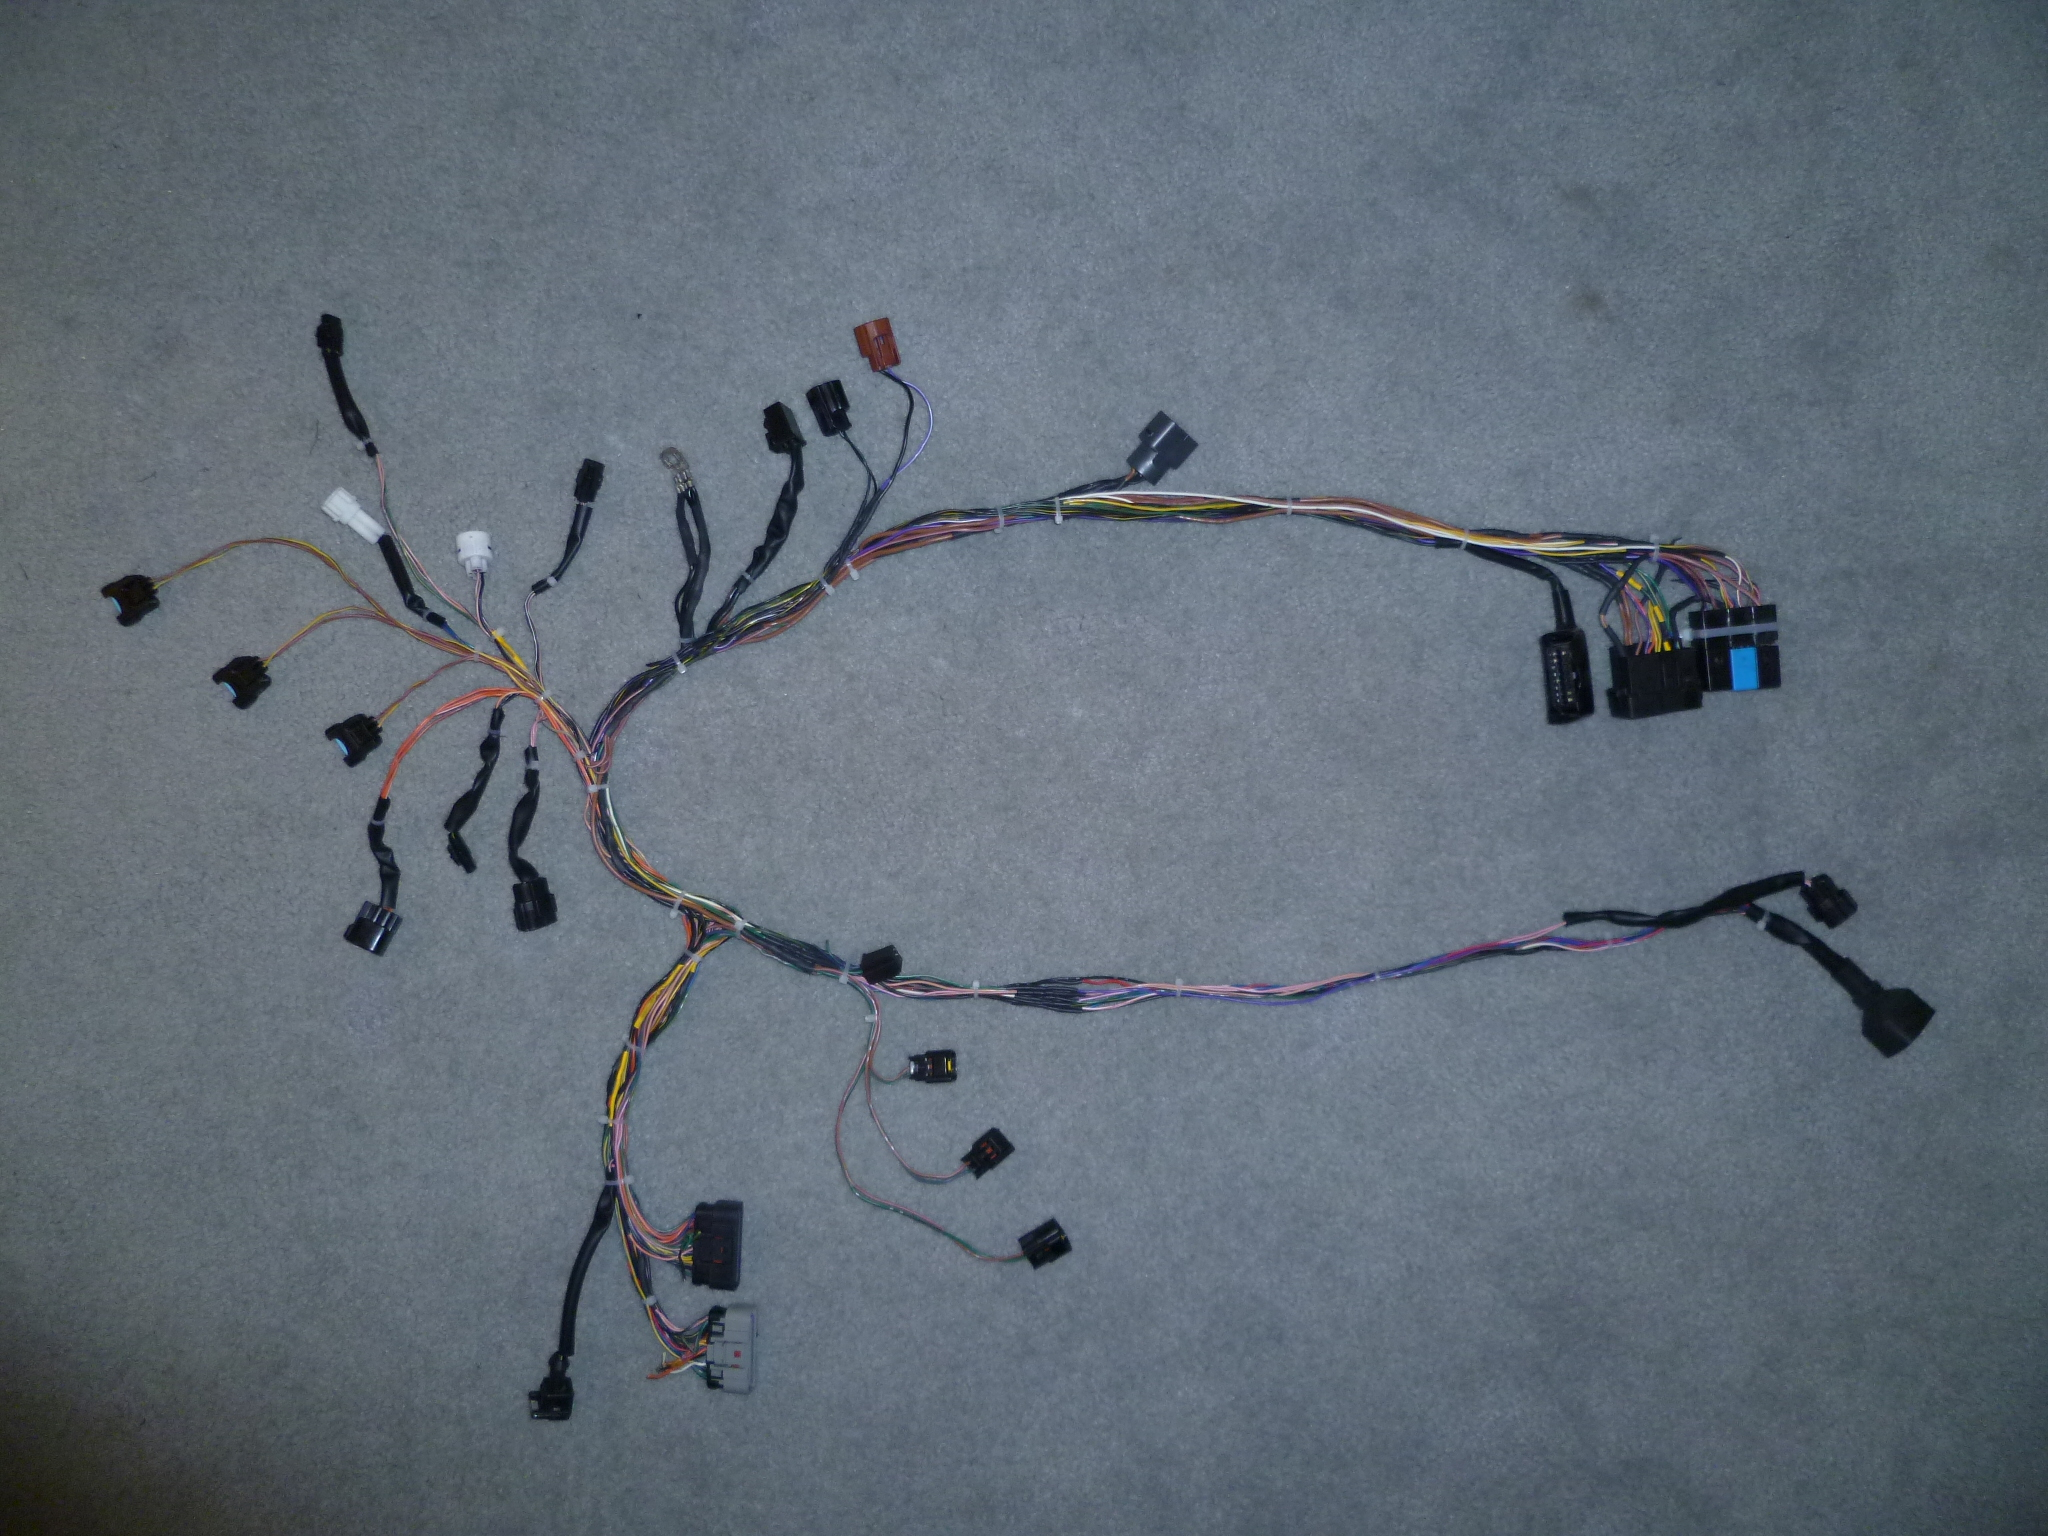 howto daytona 675 custom wire harness for track usage page 2 click image for larger version p1000514 jpg views 4779 size 1 56